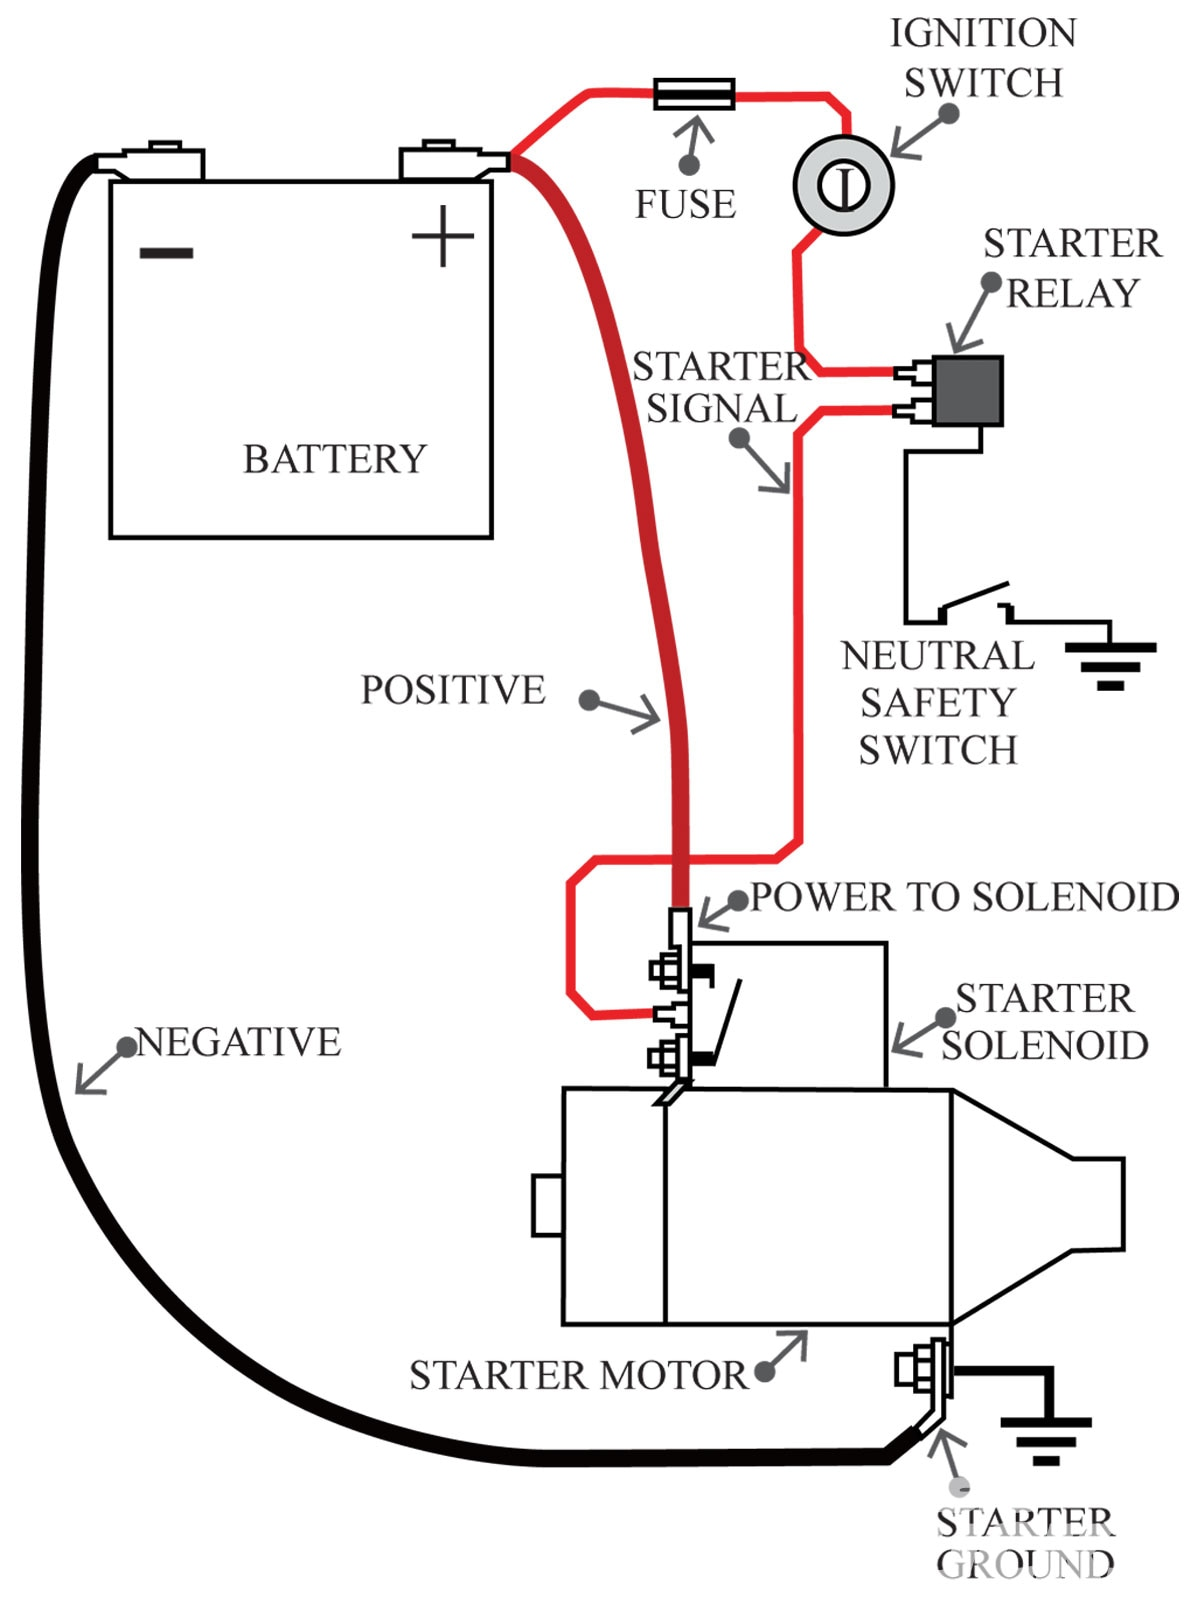 electrical wiring on basic dc theory dc circuit terminology wiring